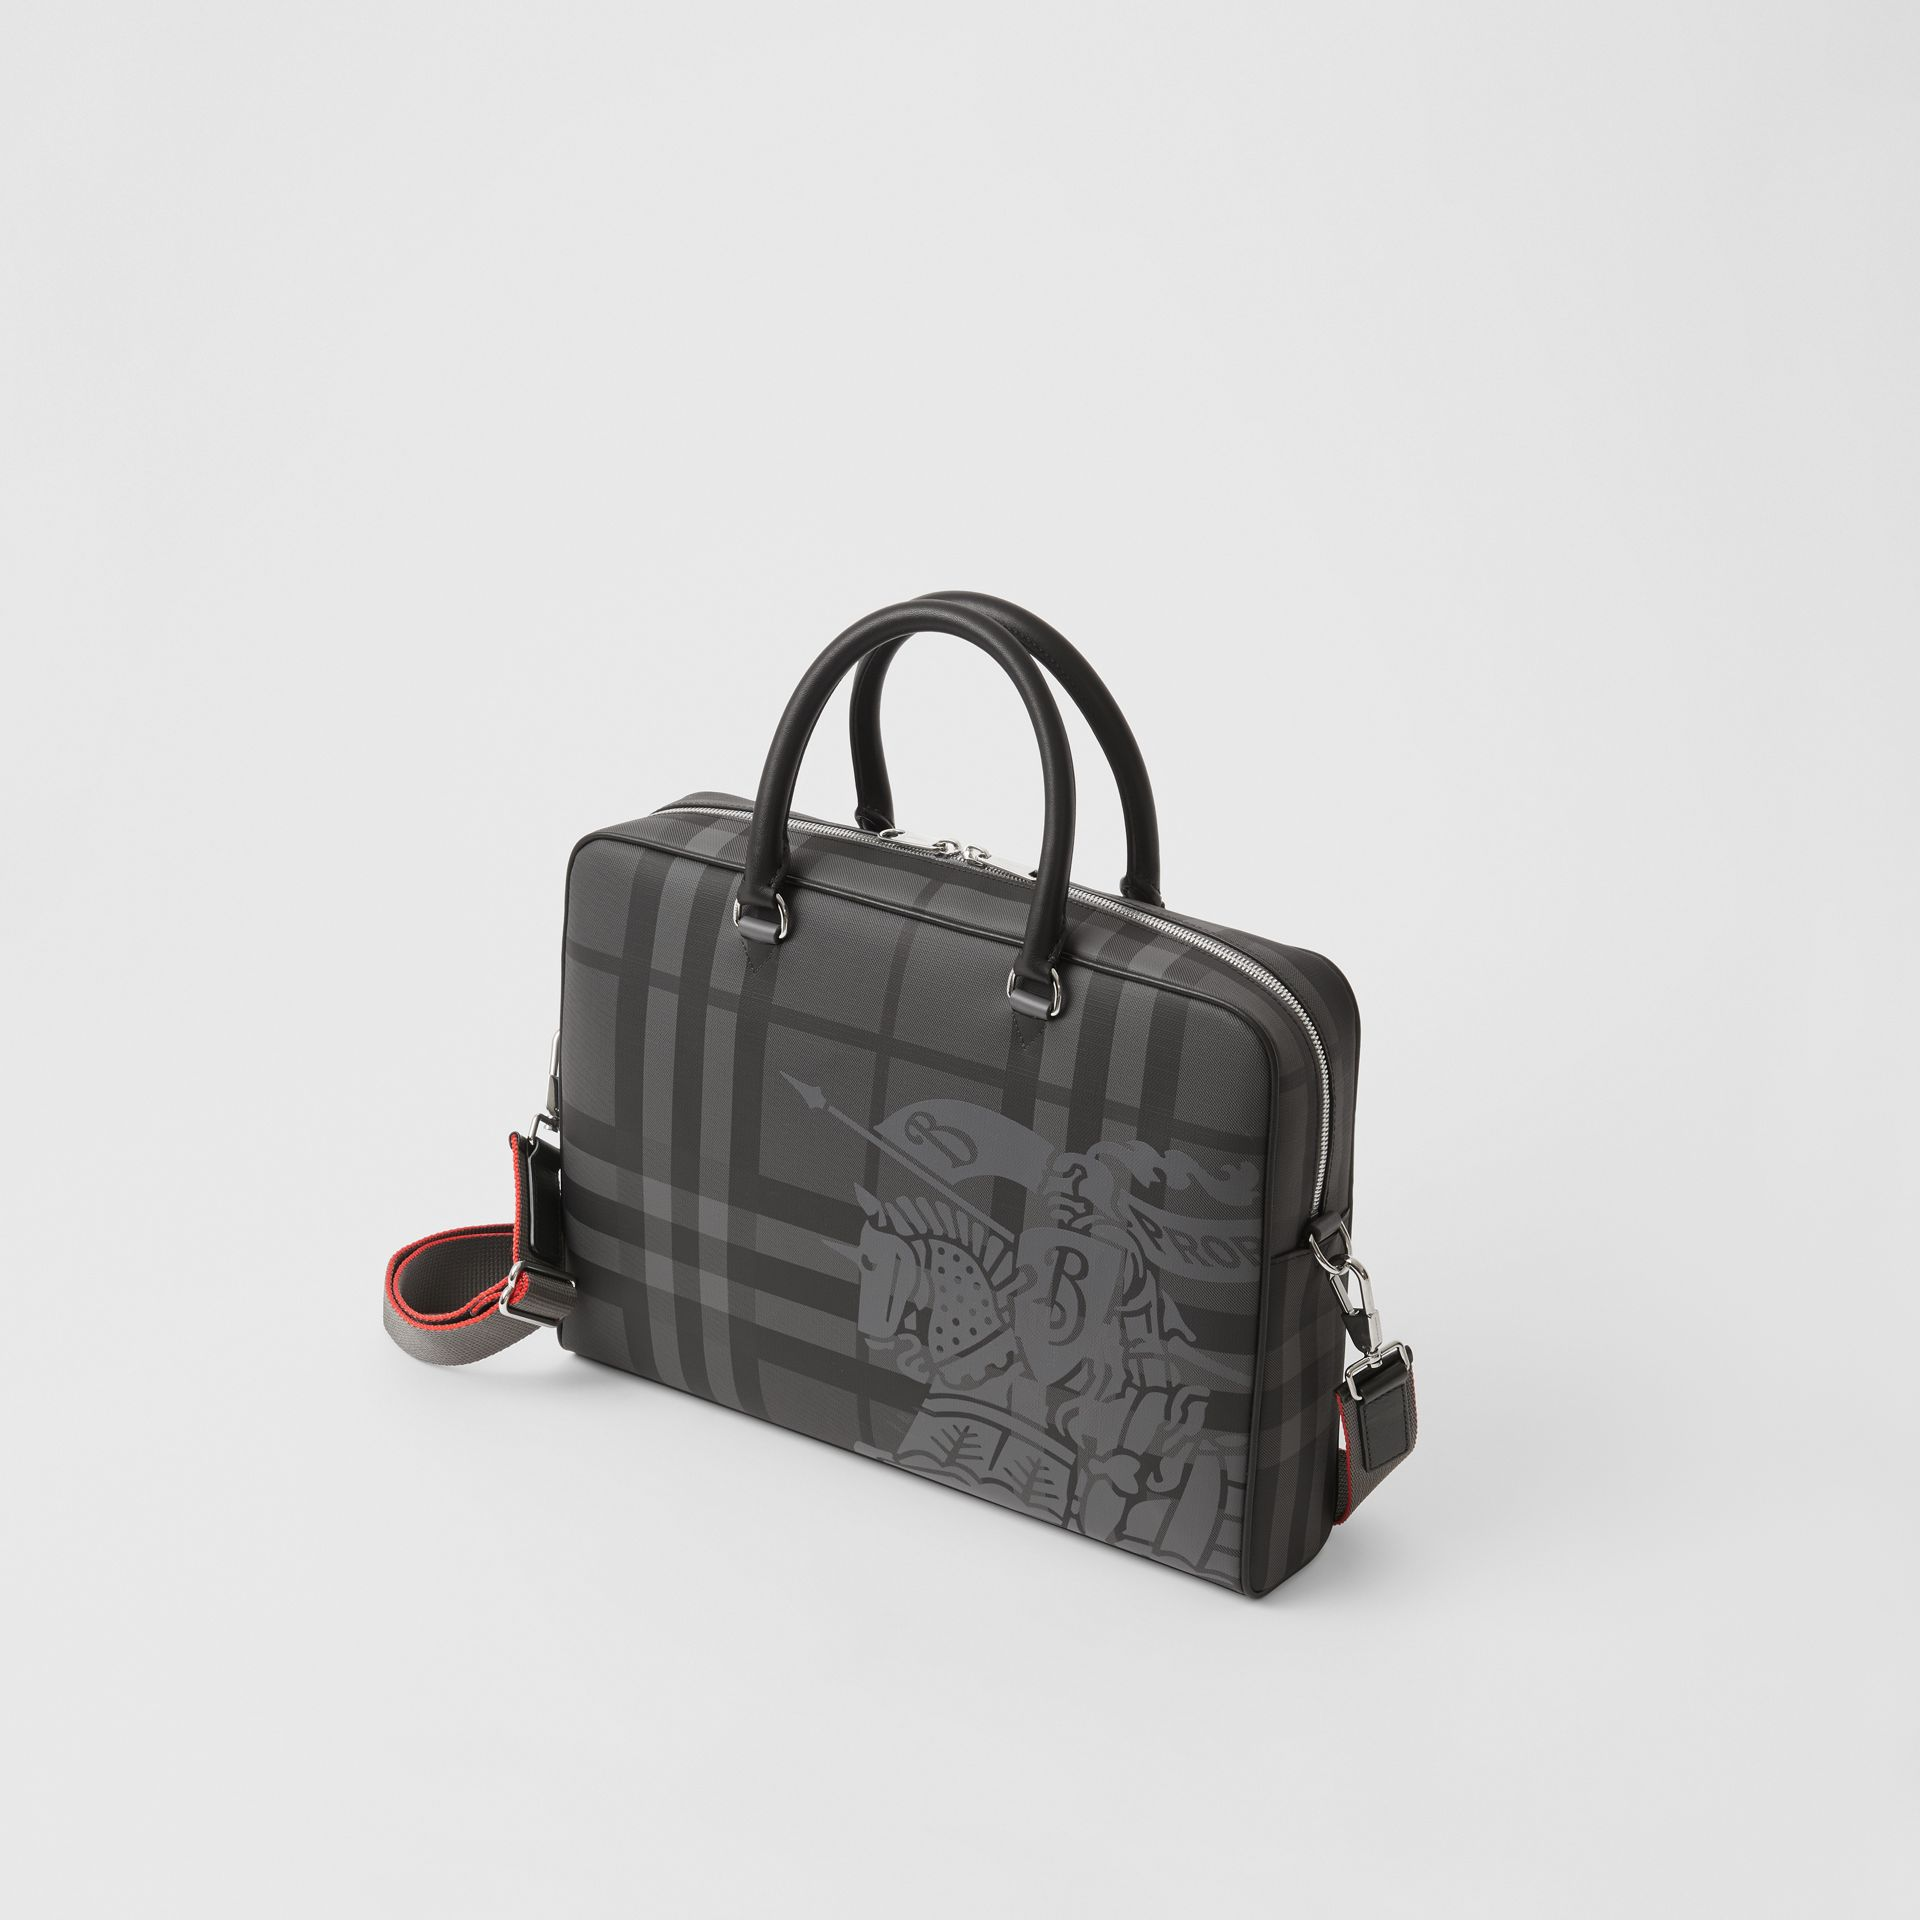 EKD London Check and Leather Briefcase in Charcoal/black - Men | Burberry - gallery image 4